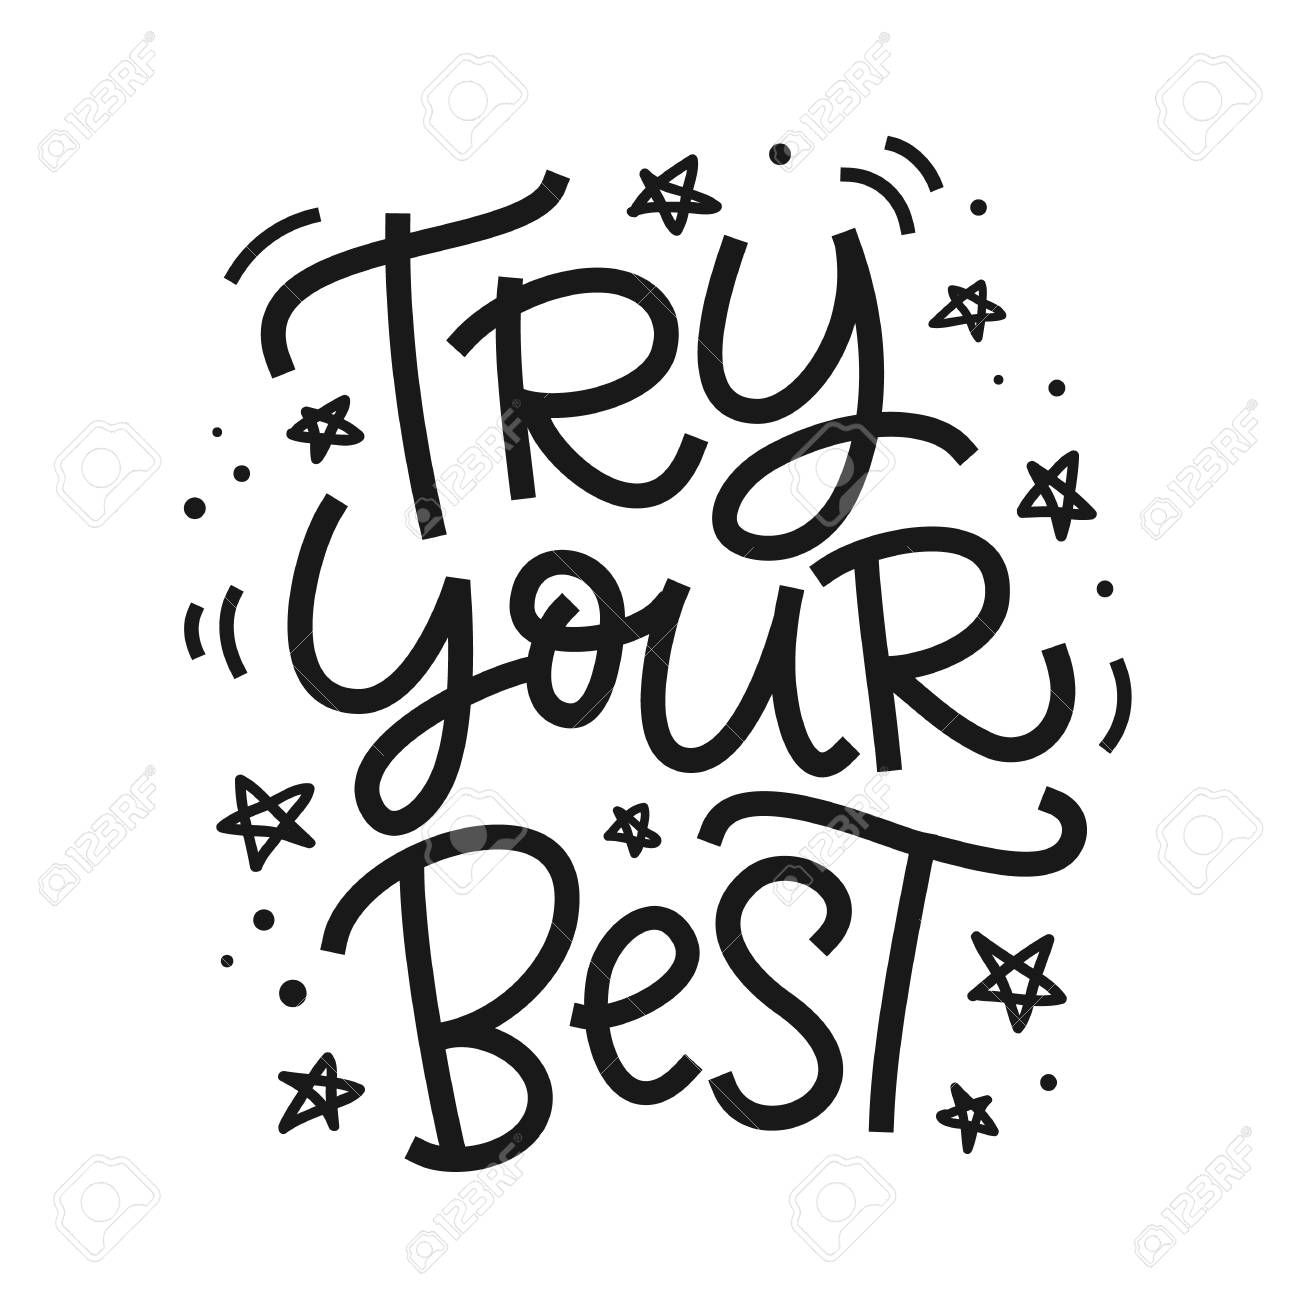 Try Your Best freehand poster. Hand lettering motivational phrase.